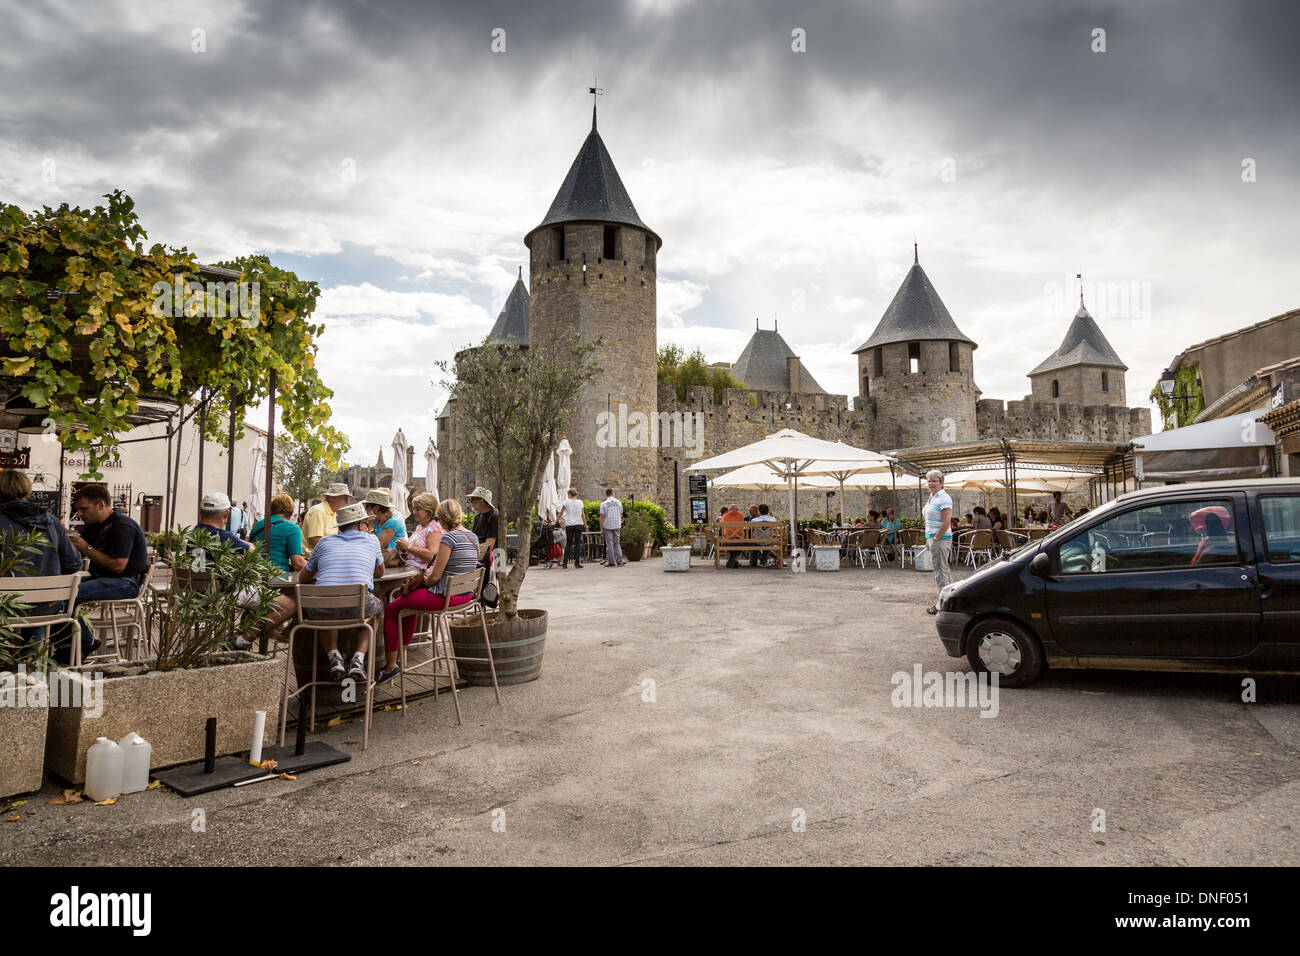 Carcassonne. France, Europe. Tourists in the cafés and restaurants in the old square of Place Saint Jean. Stock Photo